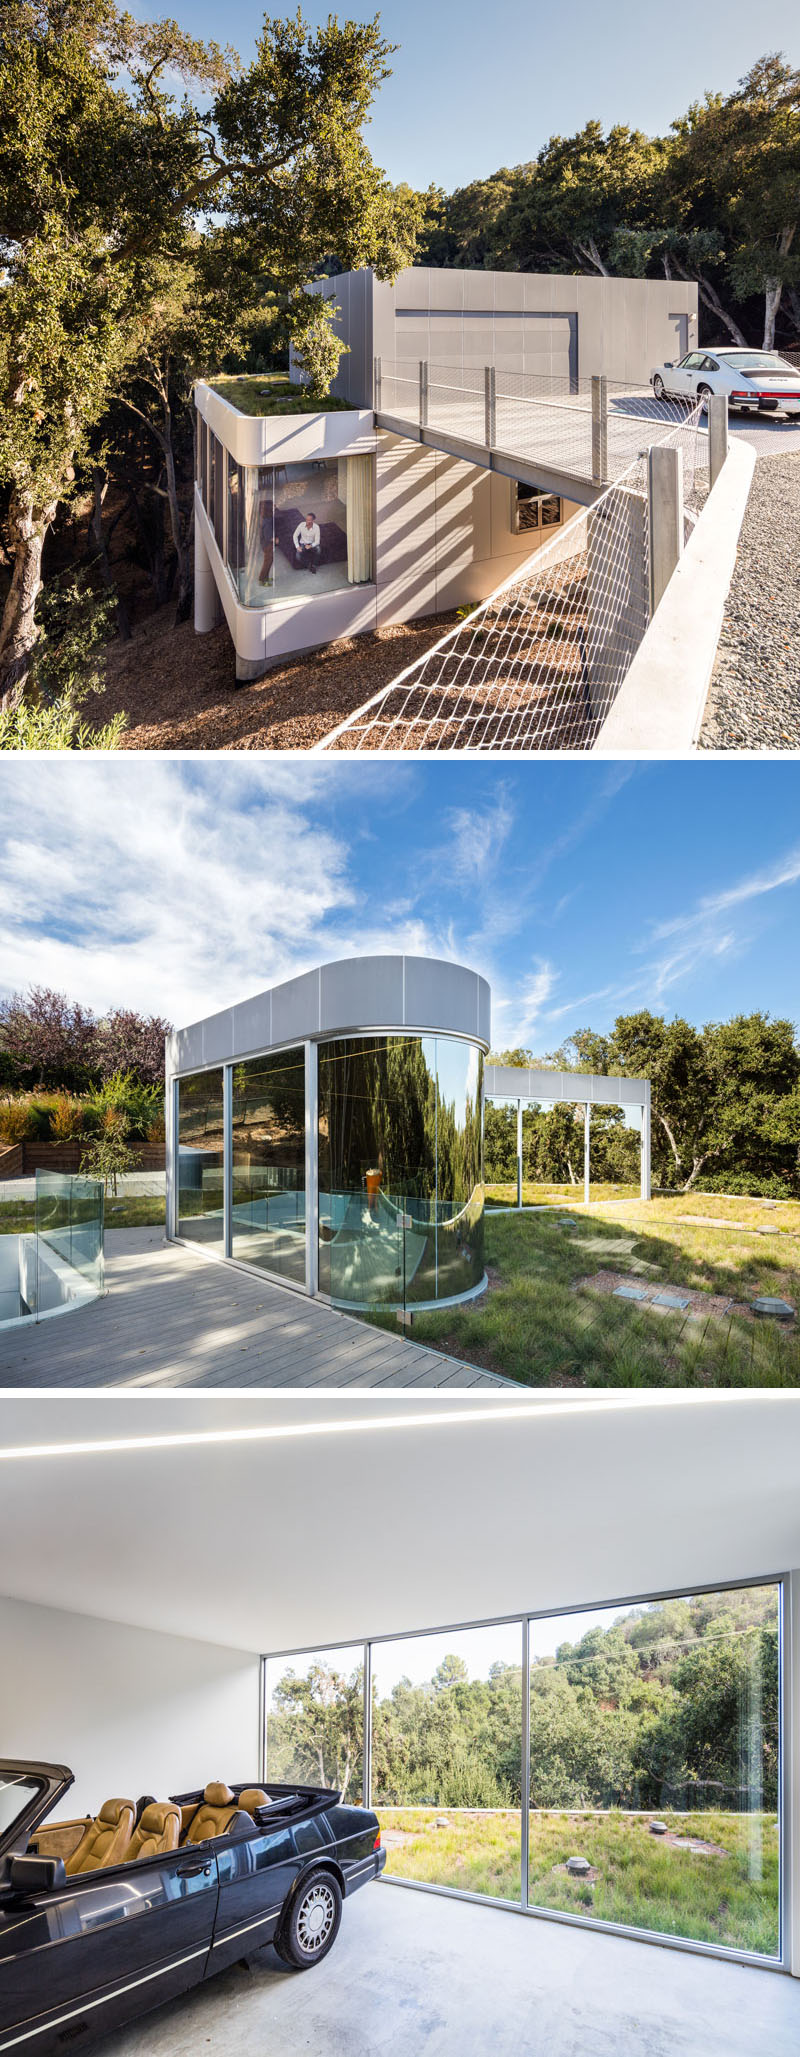 A bridge of steel grating connects the drive to the rooftop of this modern house, that features a rooftop of native grasses, while an observation deck sits in the grass field along with a garage/foyer of zinc panels and mirror glass. #ModernHouse #GreenRoof #Garage